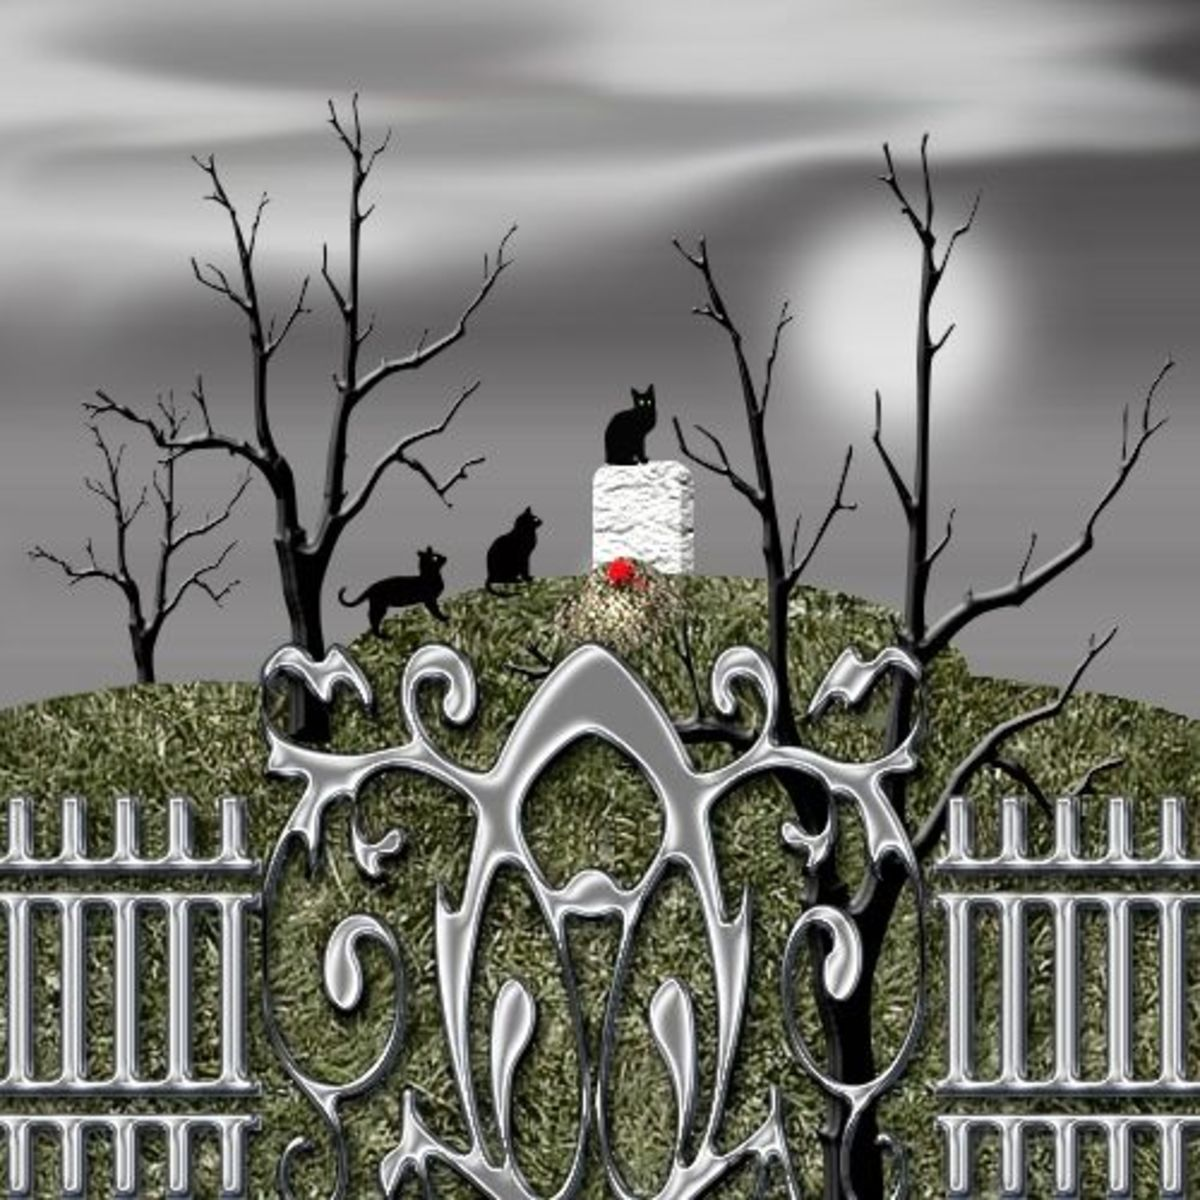 Black cats on cemetery gravestones  clip art.